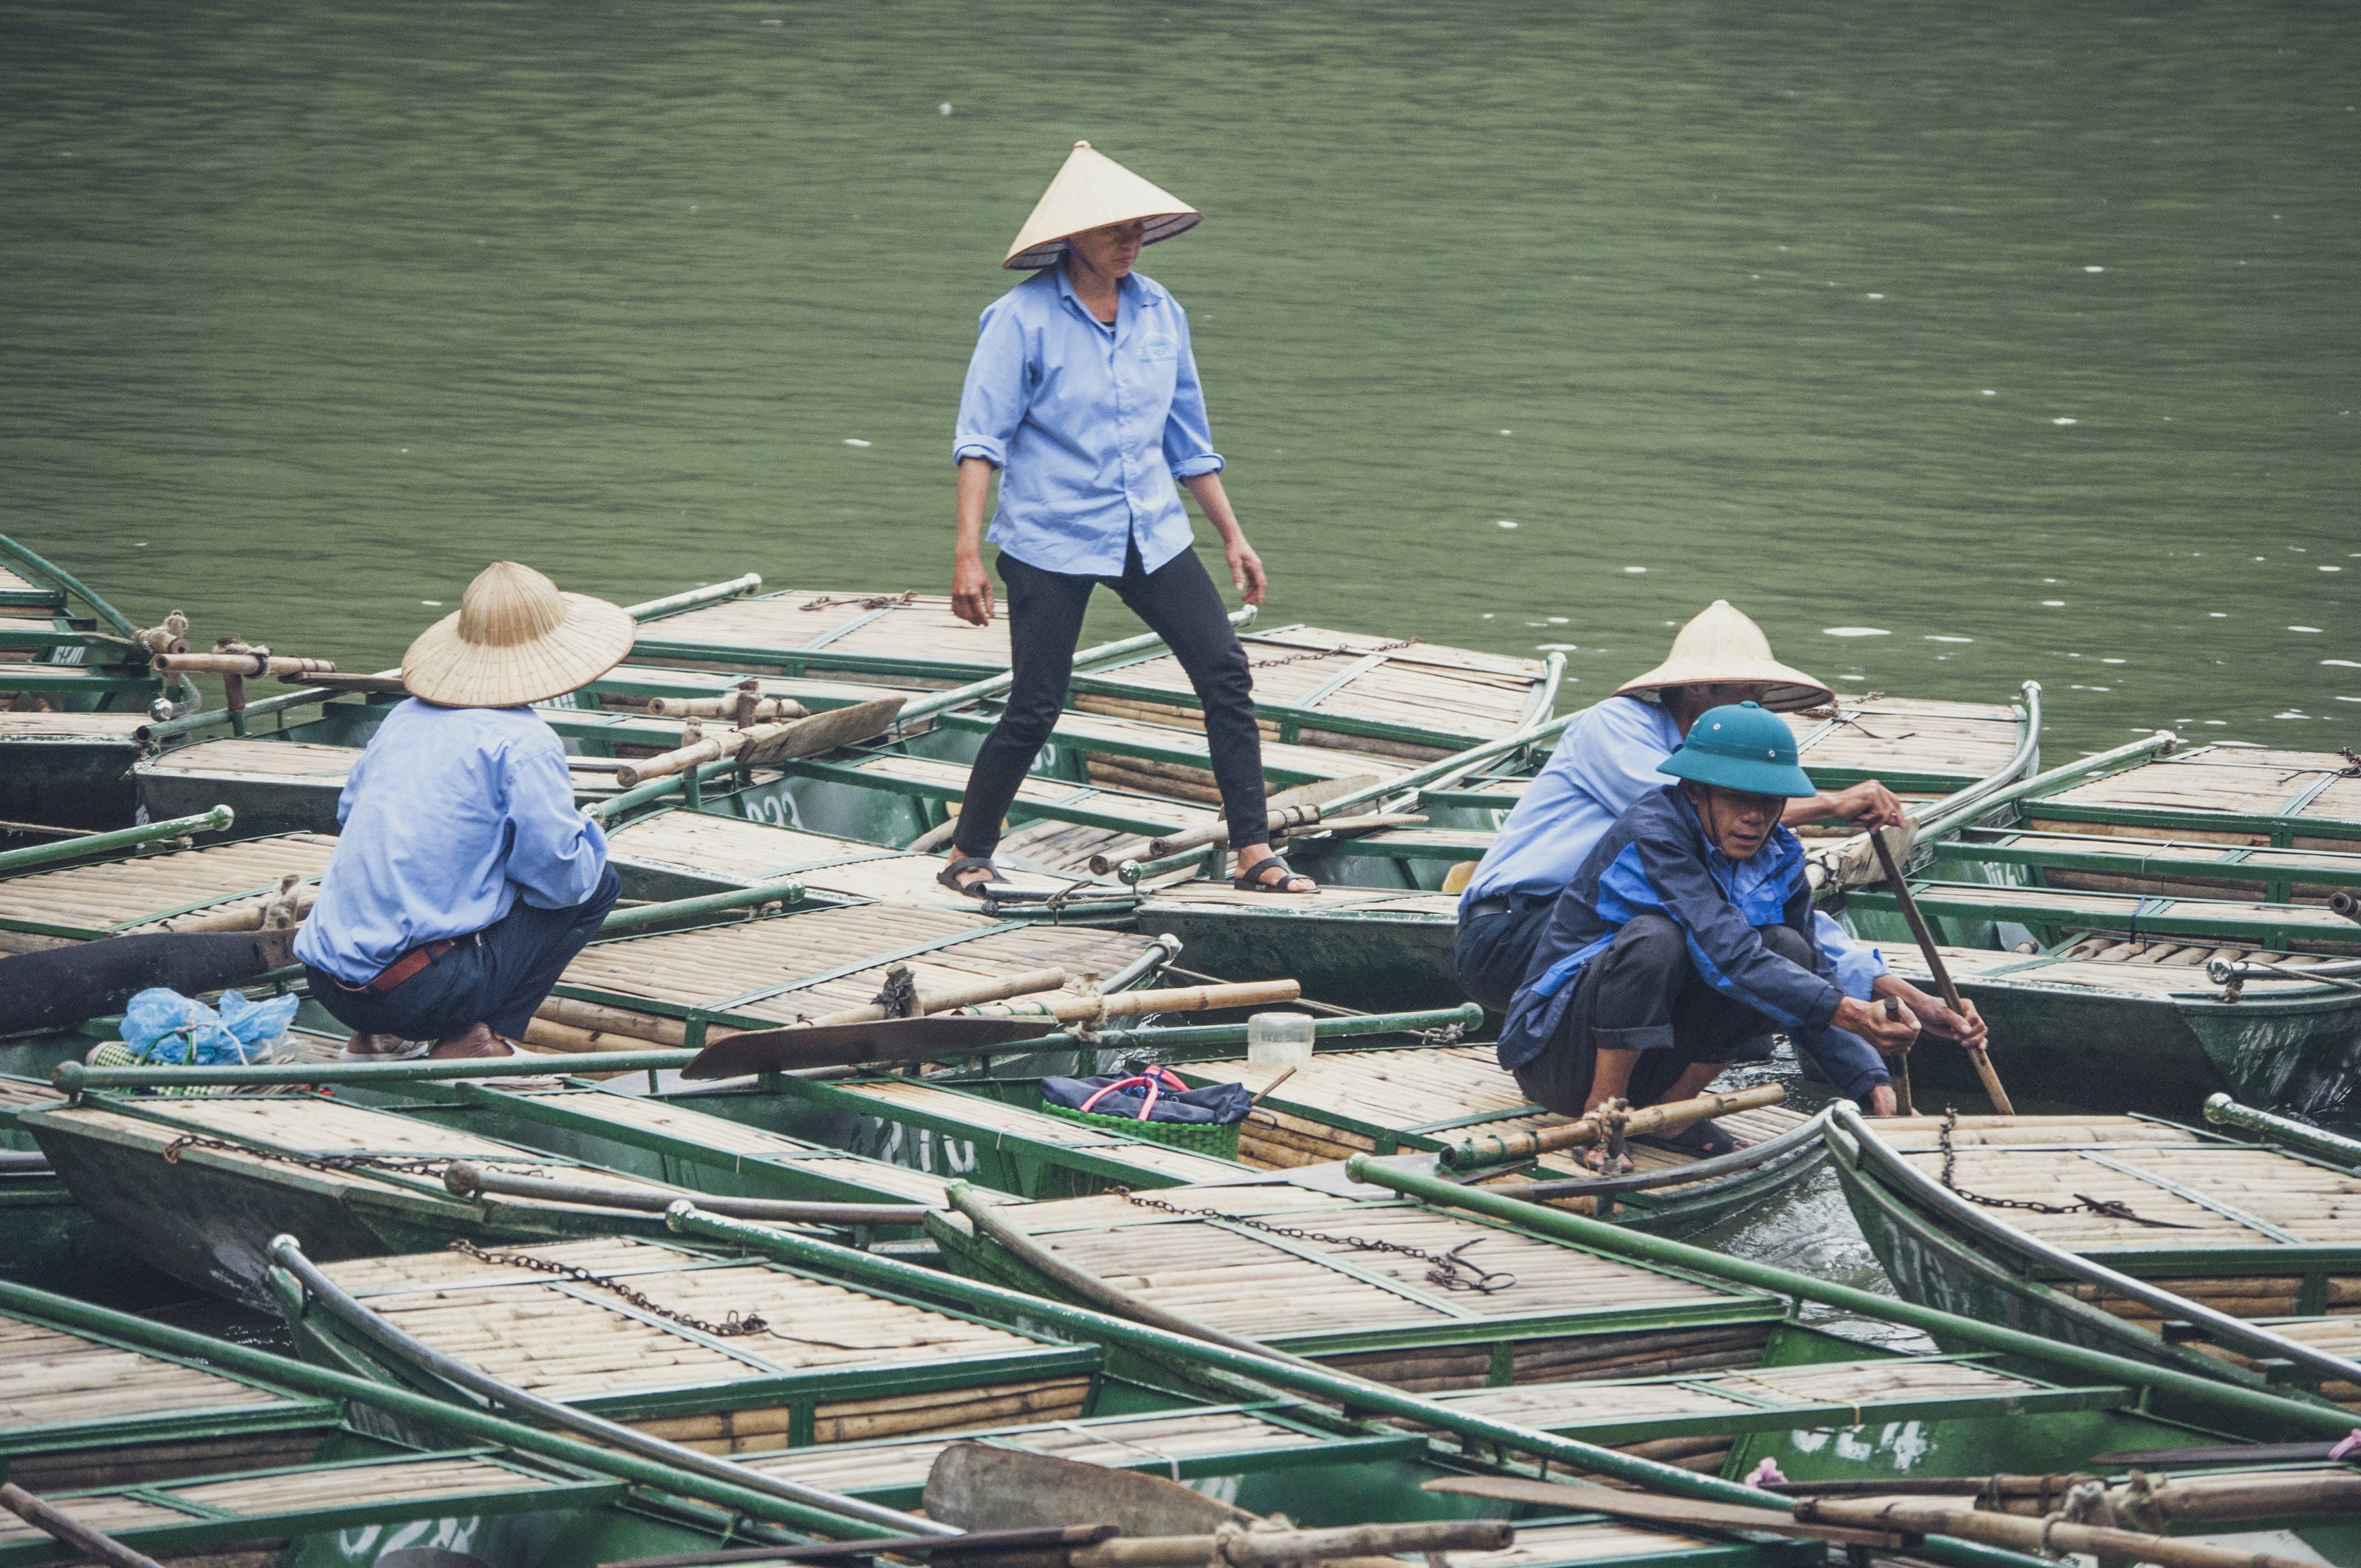 Four fishermen prepare their boats for the day in Vietnam